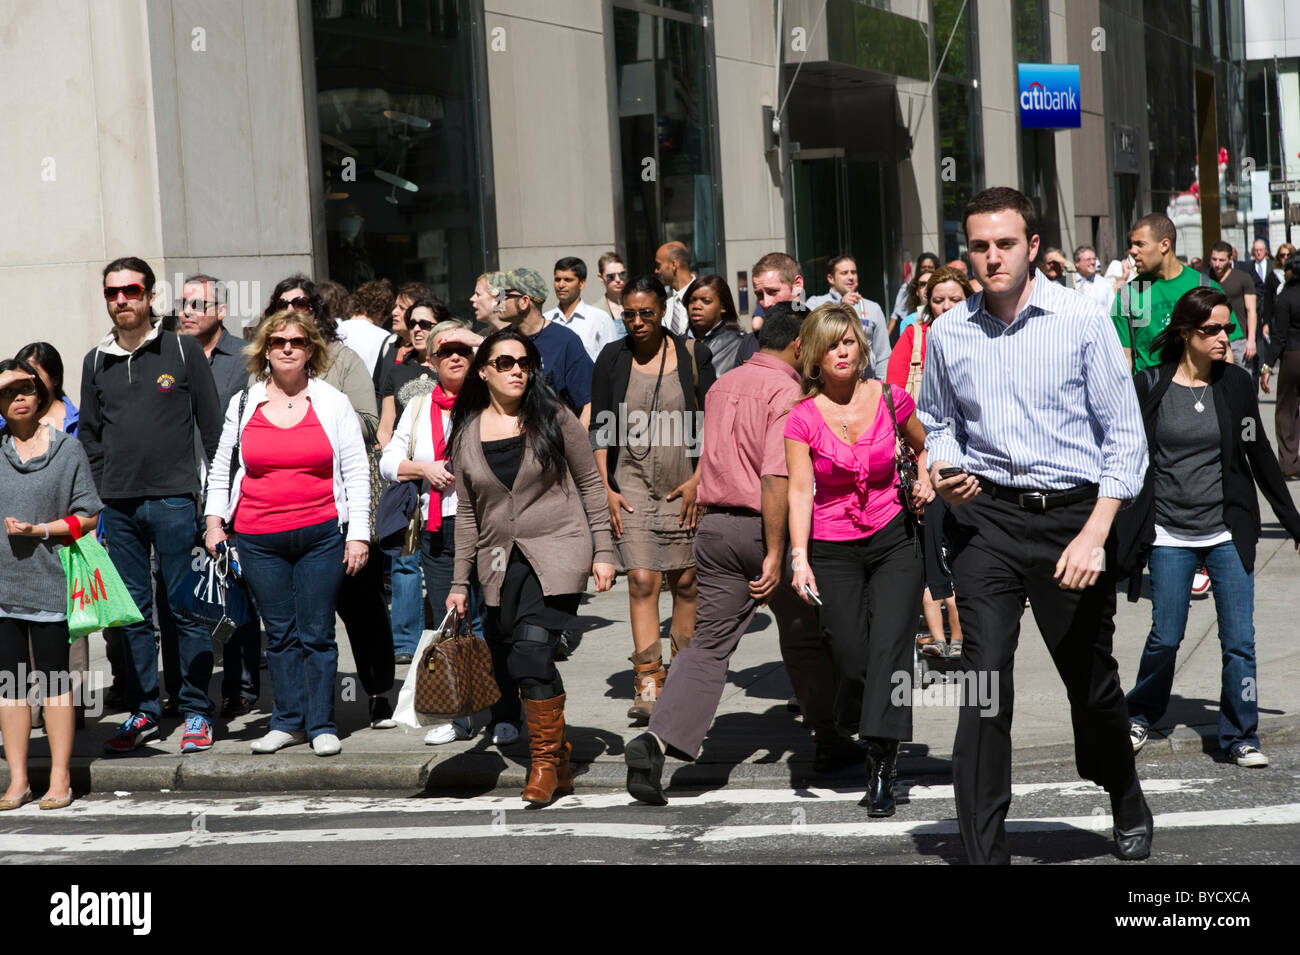 Crowd of people on Fifth Avenue, New York City, USA - Stock Image